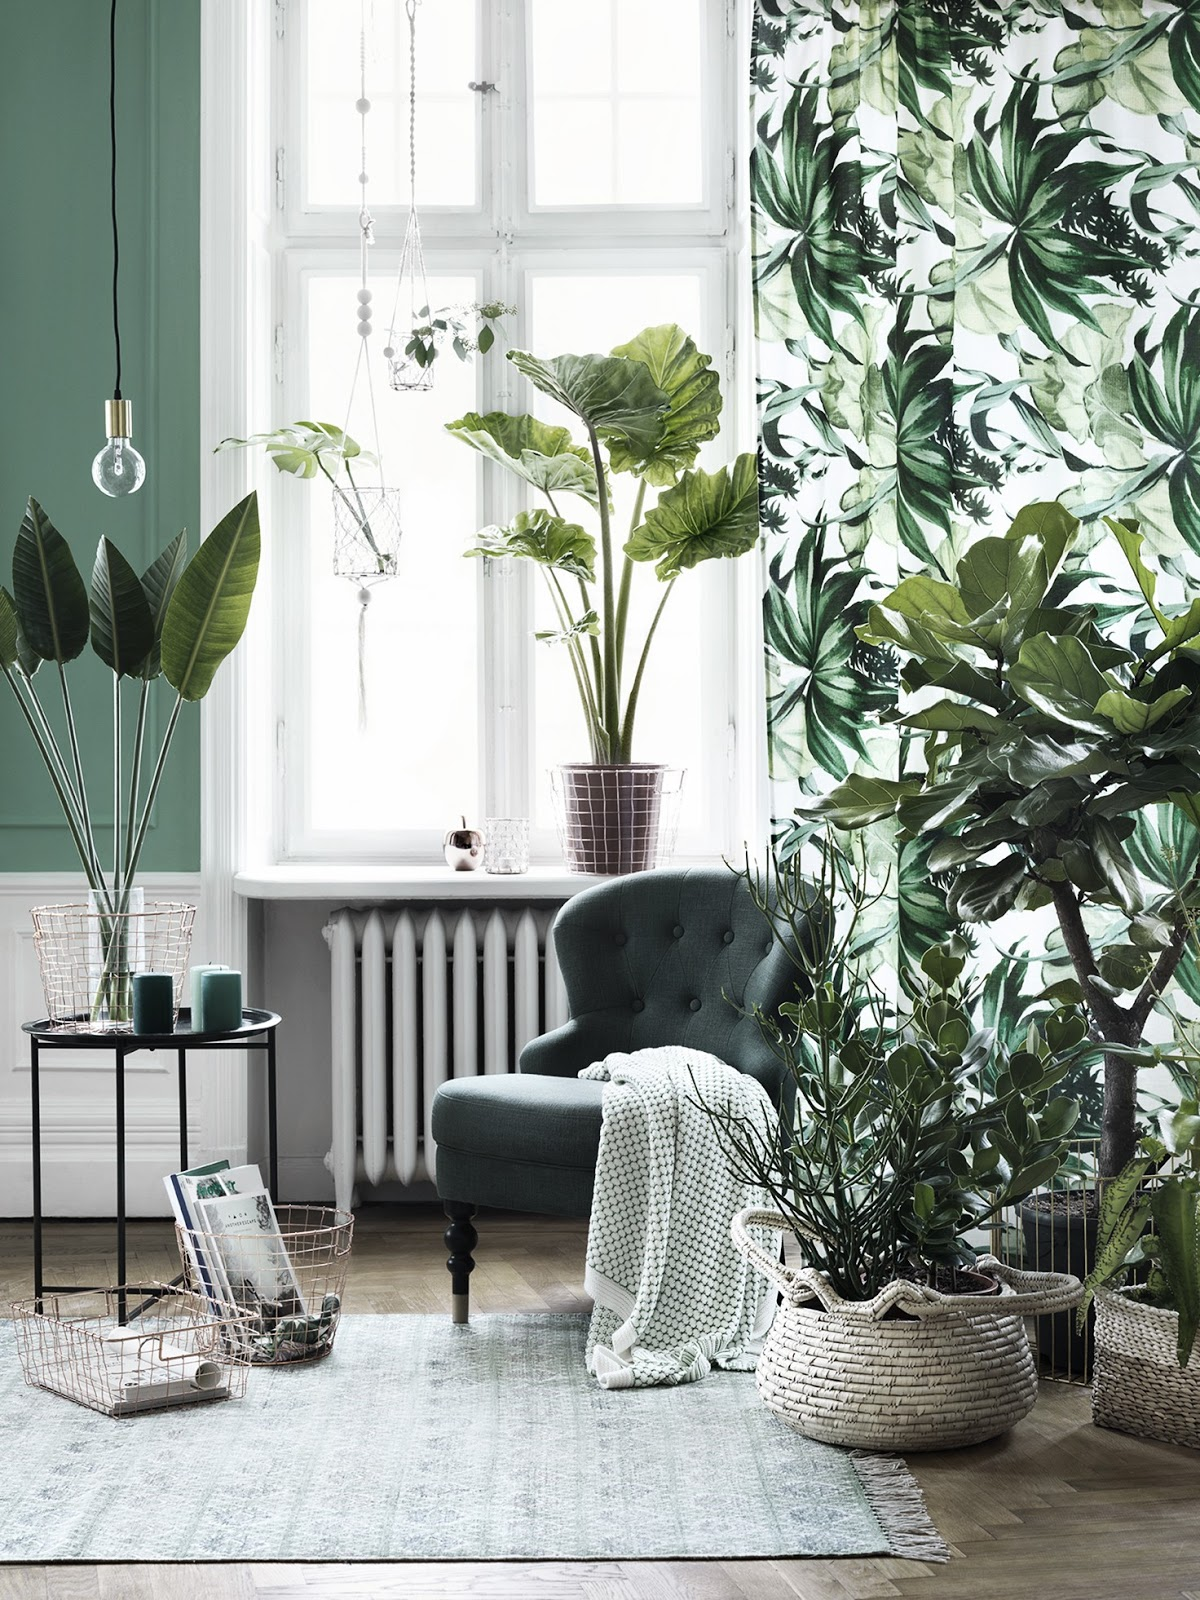 Big Plants For Living Room Revitalize Your Home With Lush Indoor Plants In Every Room